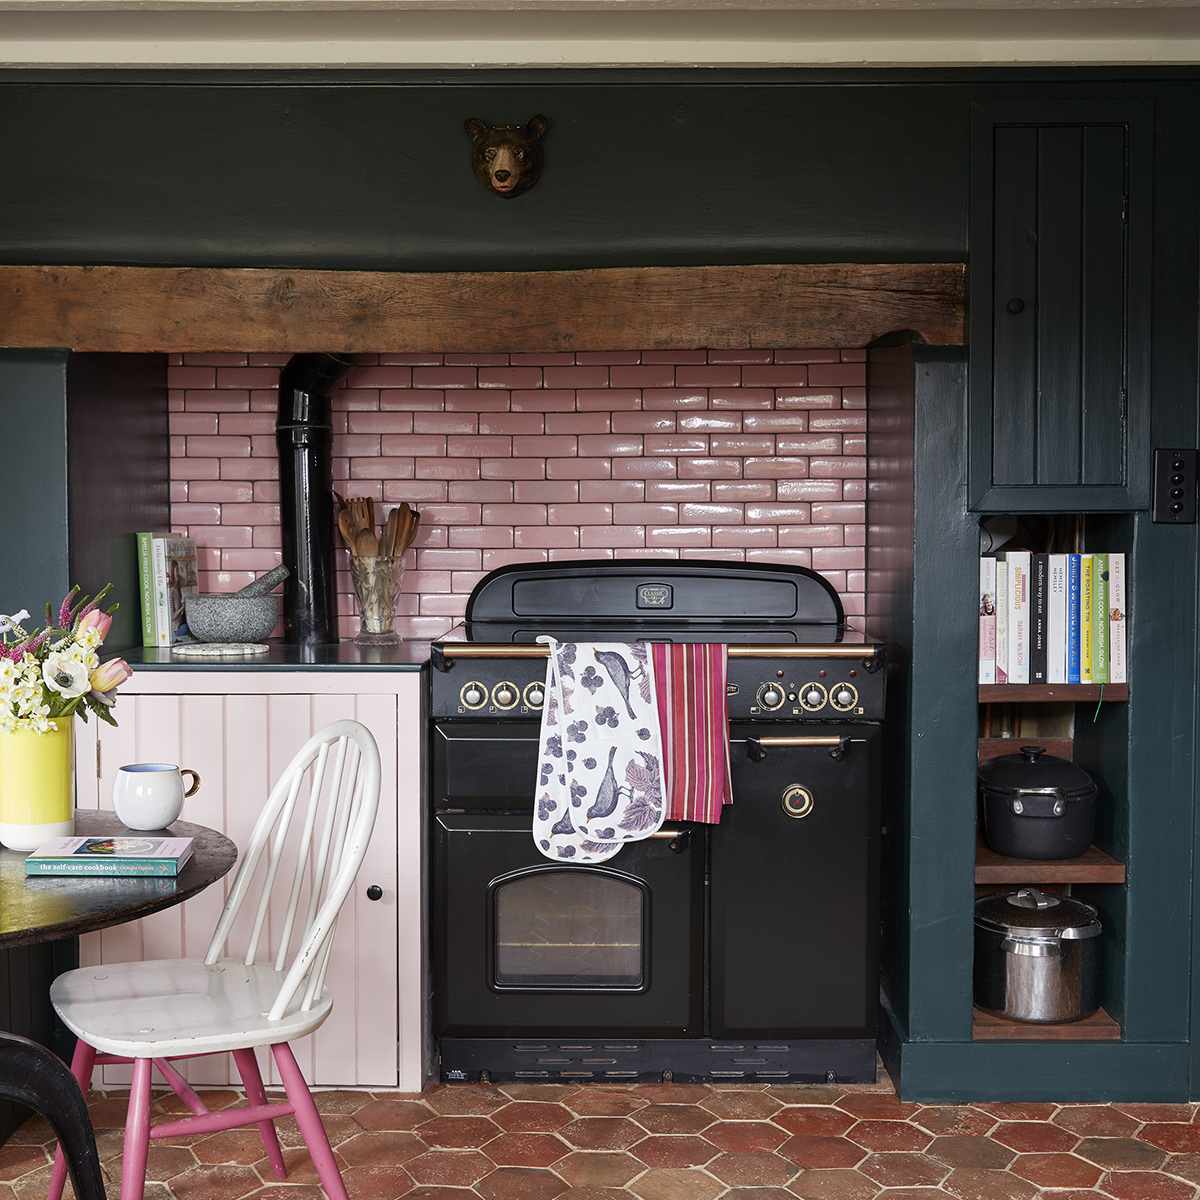 Sophie Robinson's kitchen with hexagonal terracotta floor tiles pale pink metro tiled splashback and white kitchen chair with pink legs